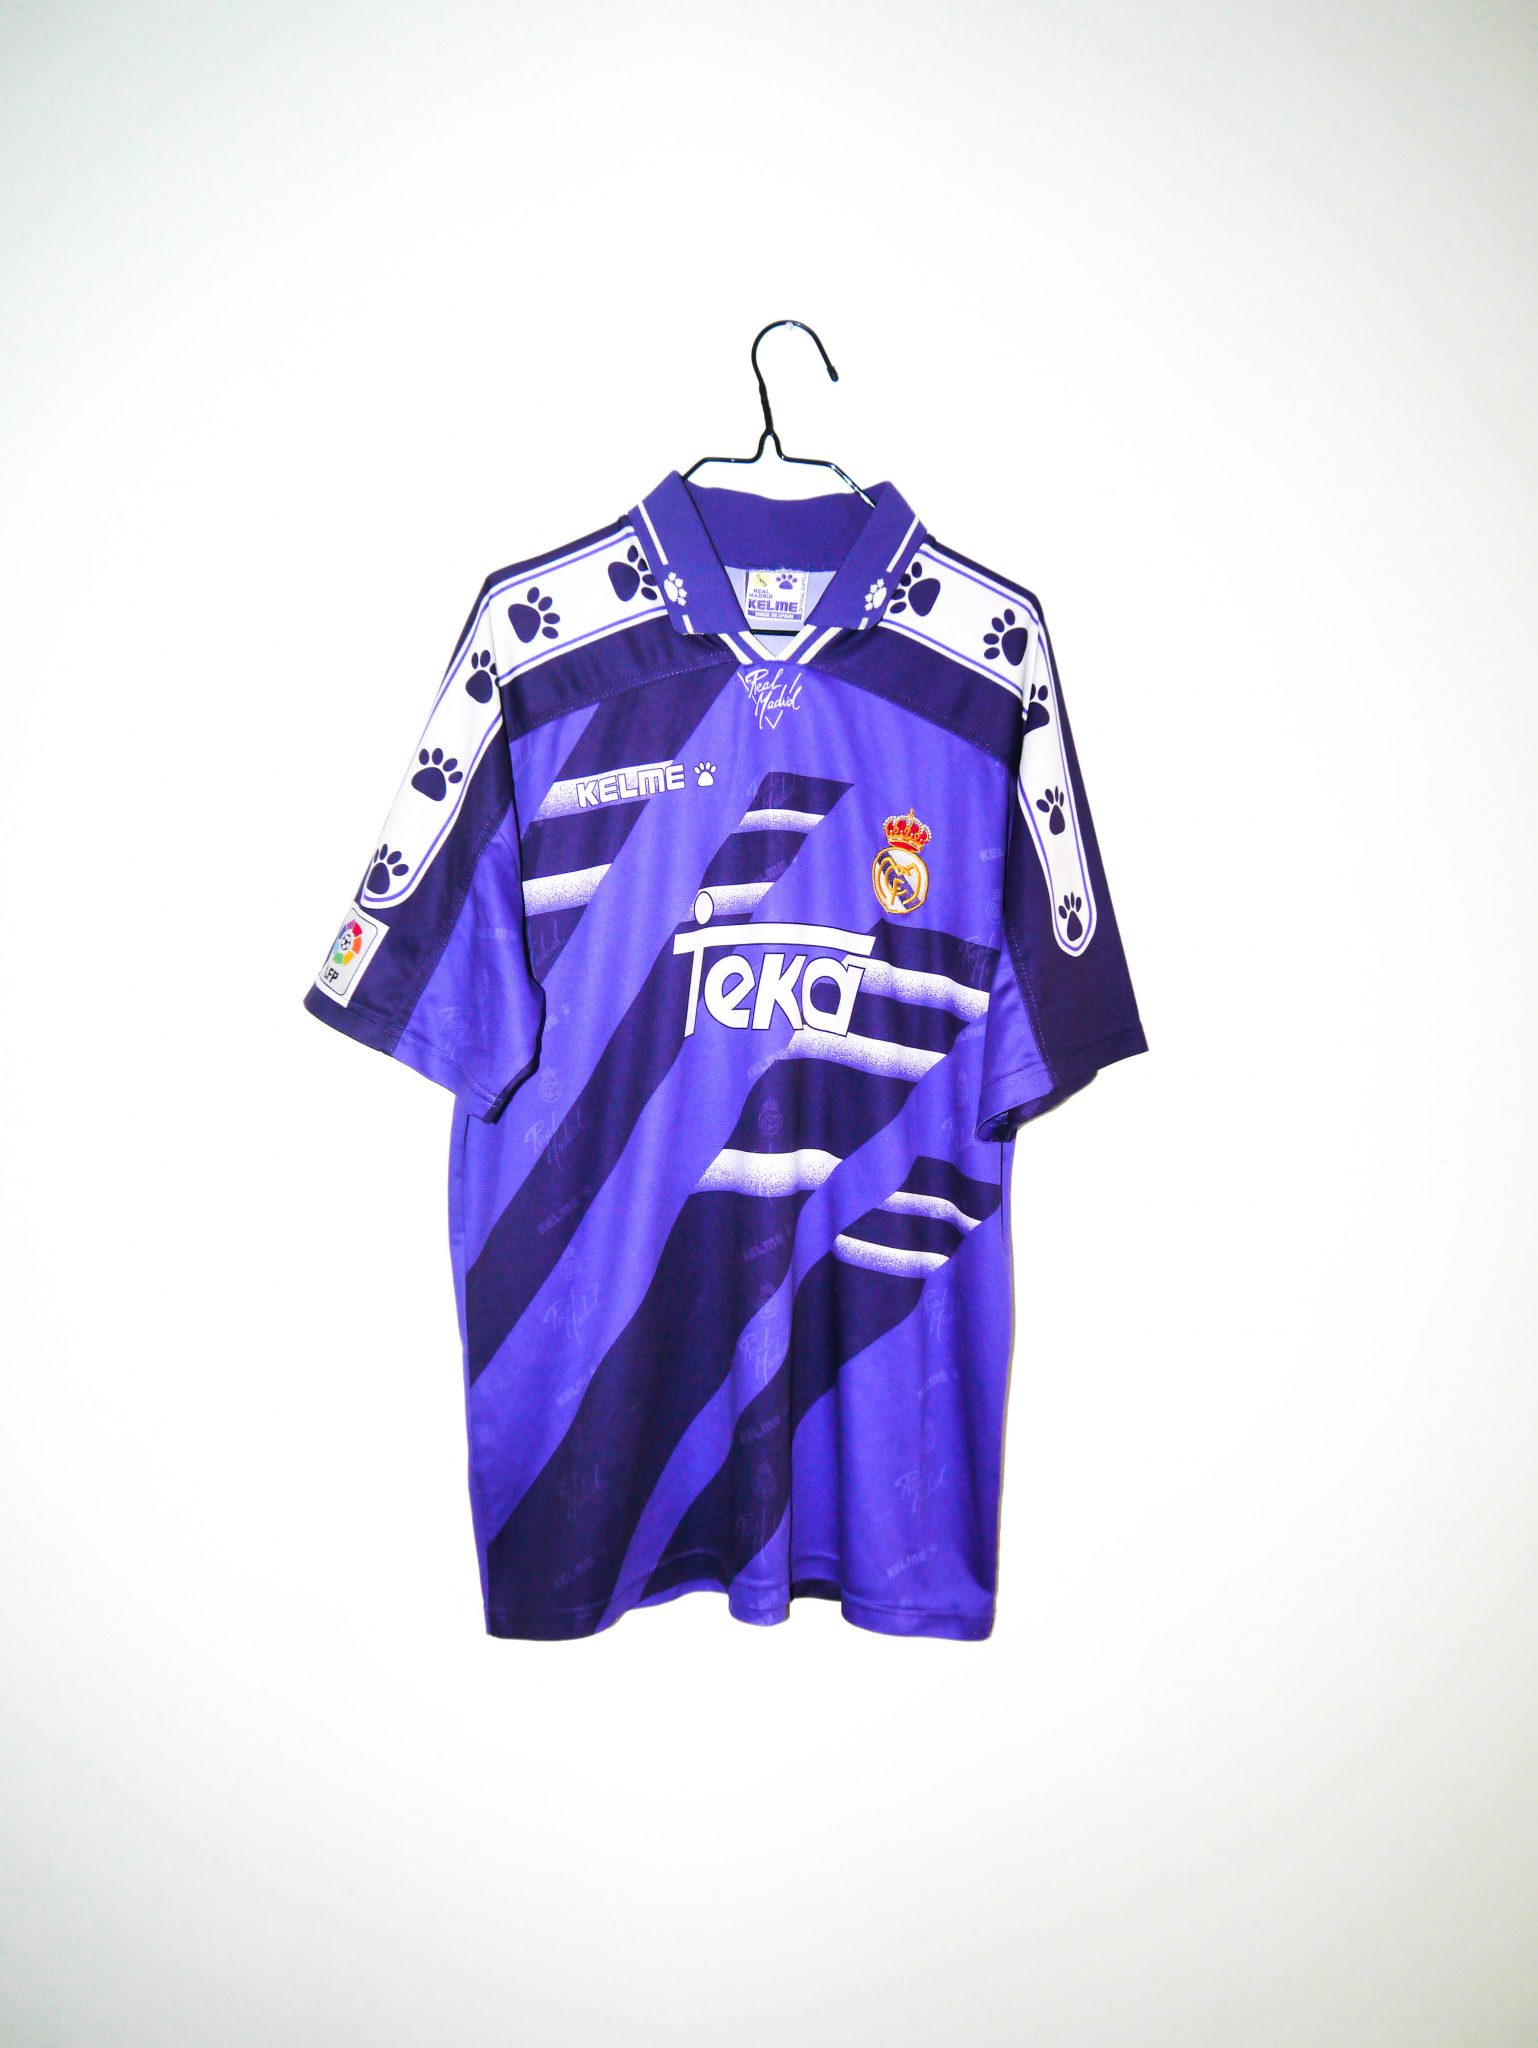 a8d685285 Home / Shop / Spanish Clubs / Real Madrid / Original 1994-96 Real Madrid  away jersey – L